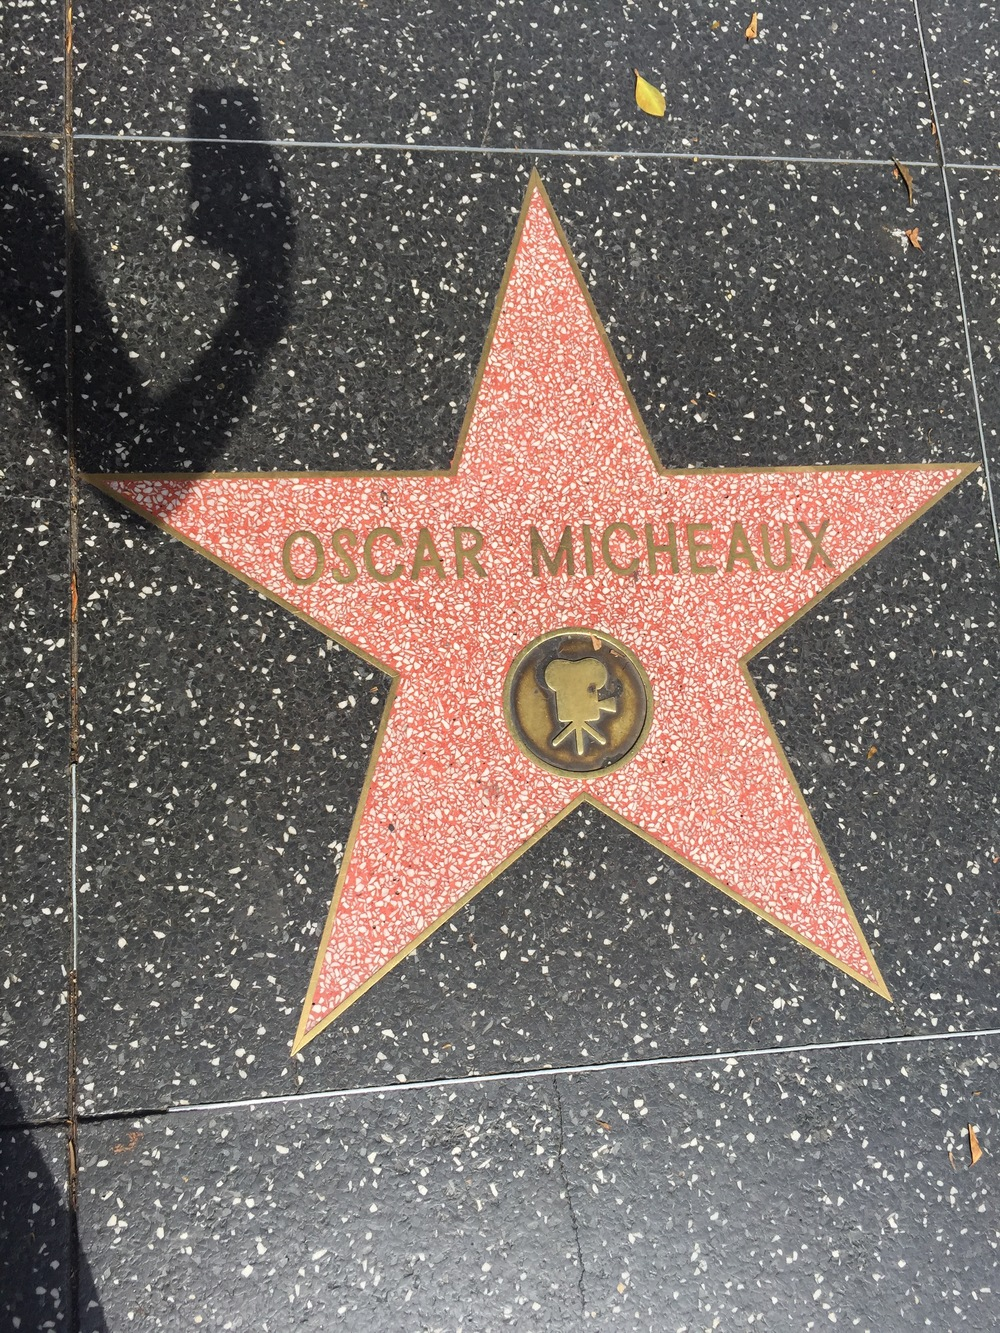 Visited the Hollywood Walk of Fame. I was surprised how vast it was the diversity of the stars.